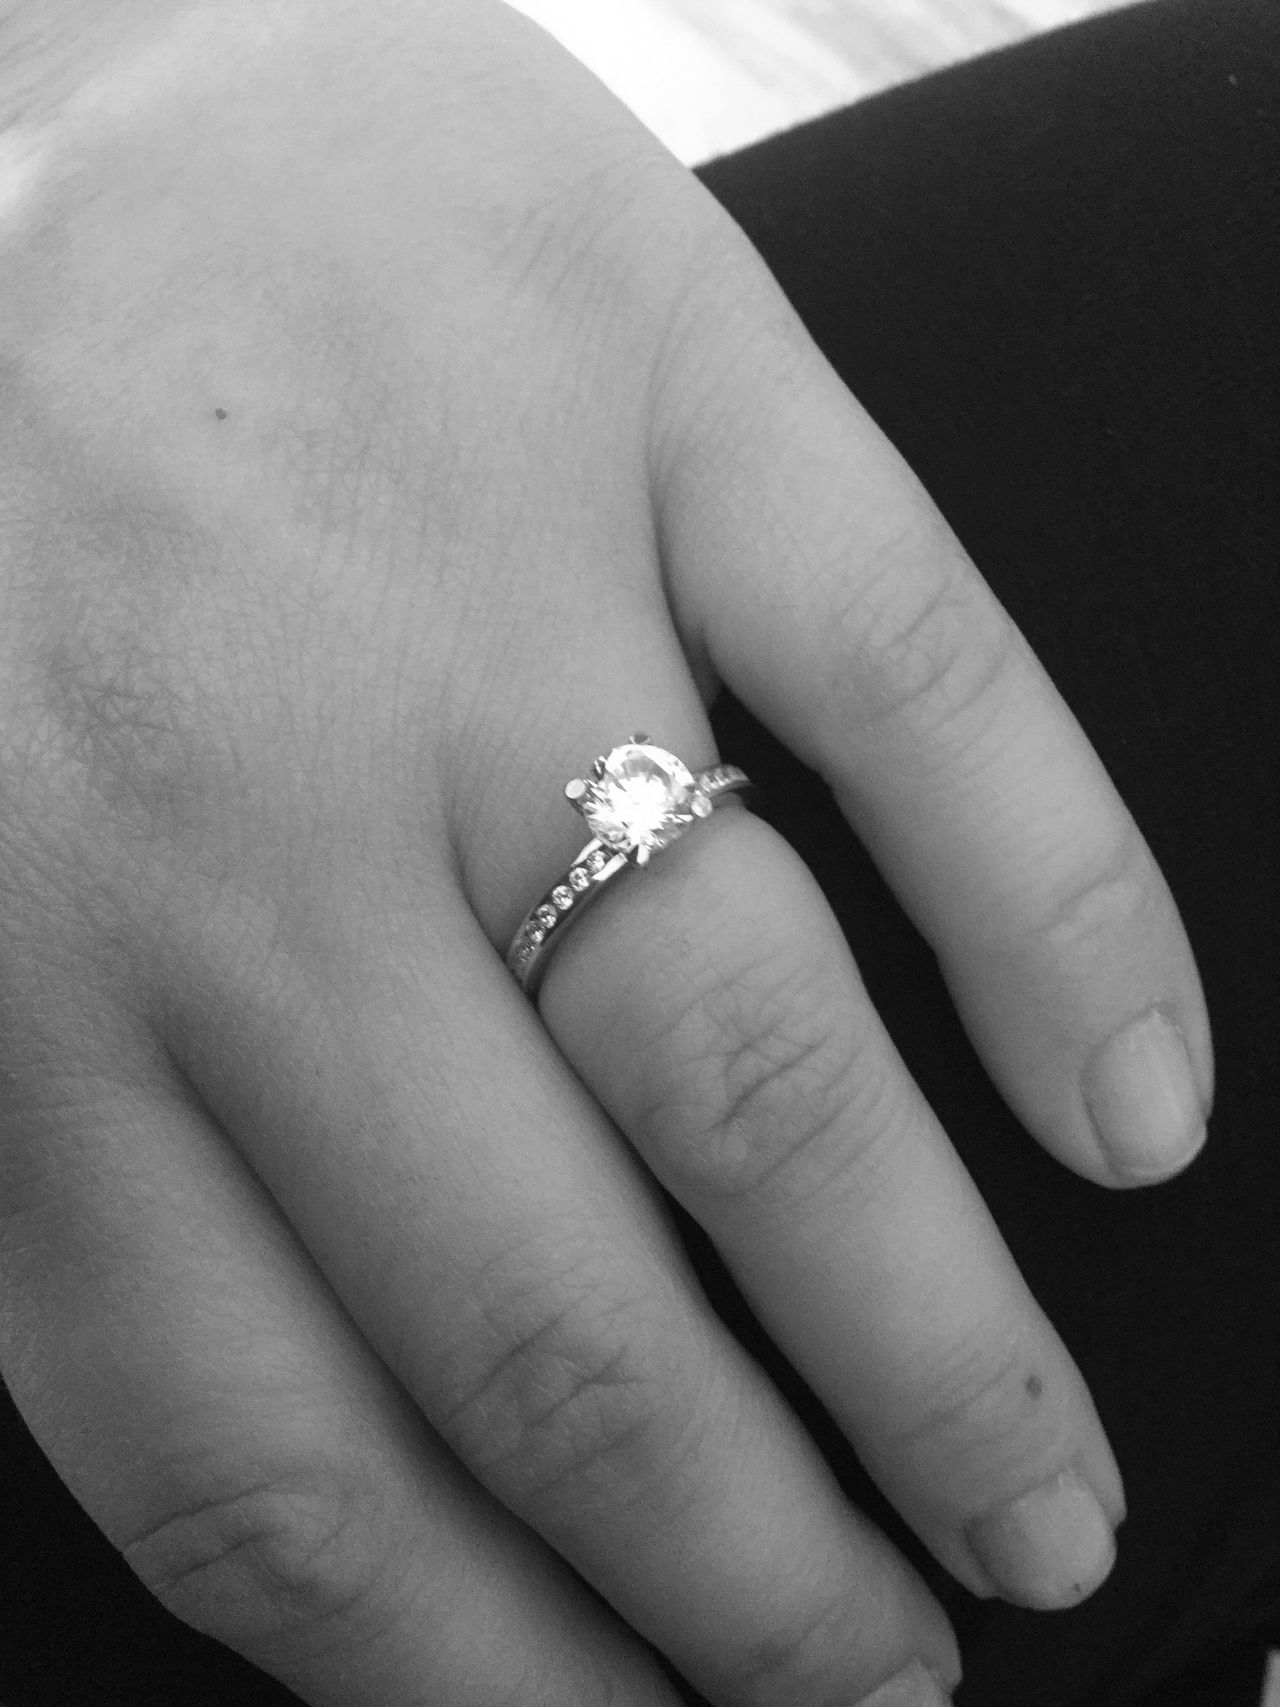 Adult Adults Only Close-up Day Human Body Part Human Finger Human Hand Indoors  Jewelry People Ring Women